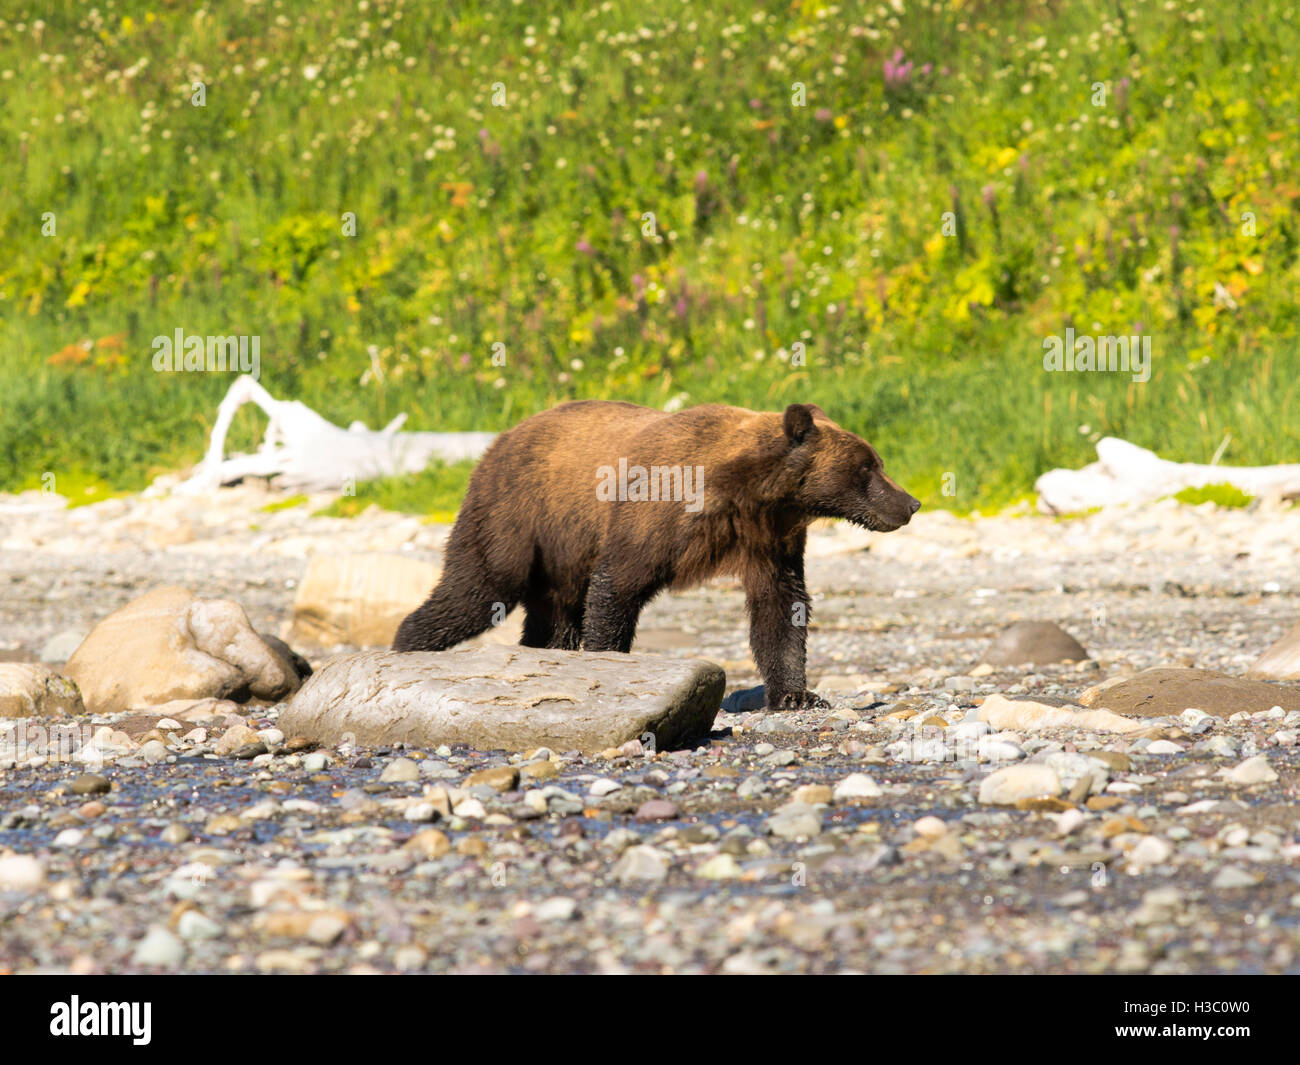 Grizzly bear walking - photo#53